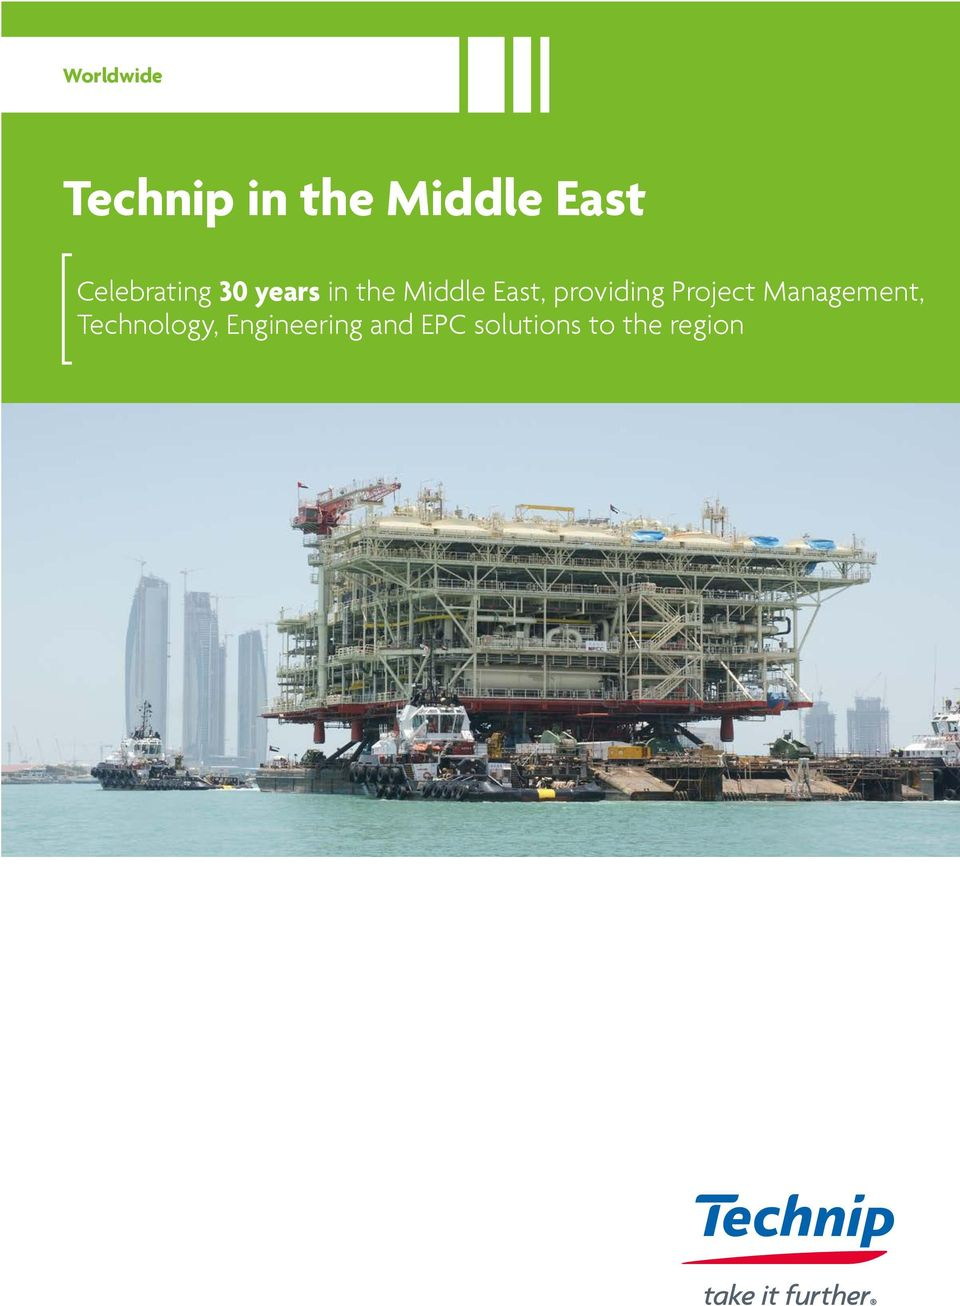 Technip in the Middle East - PDF